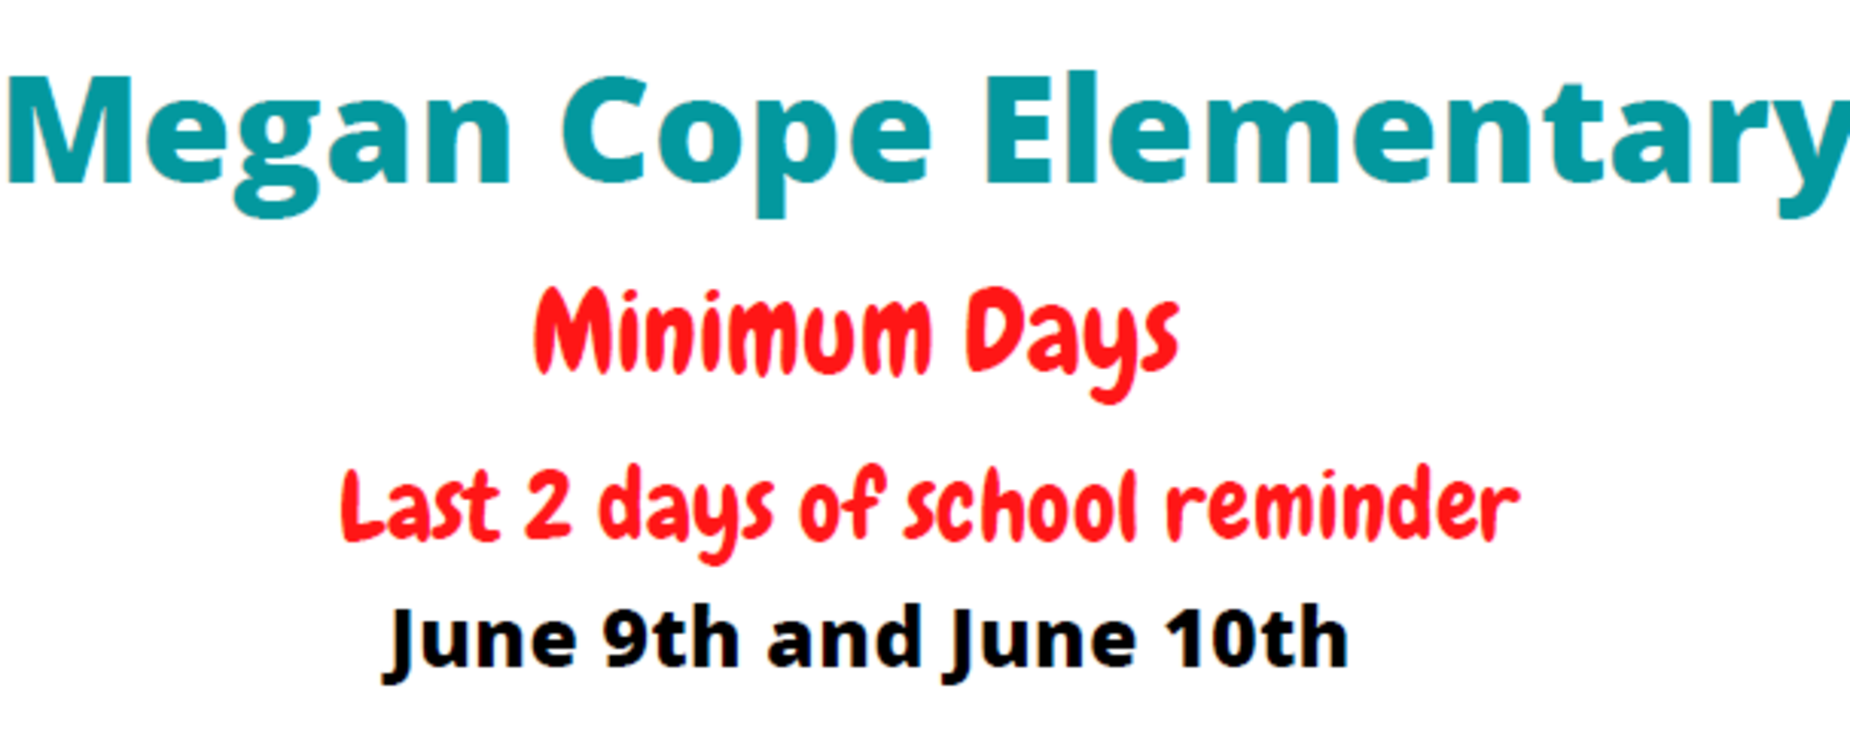 Minimum Days on June 9th and 10th